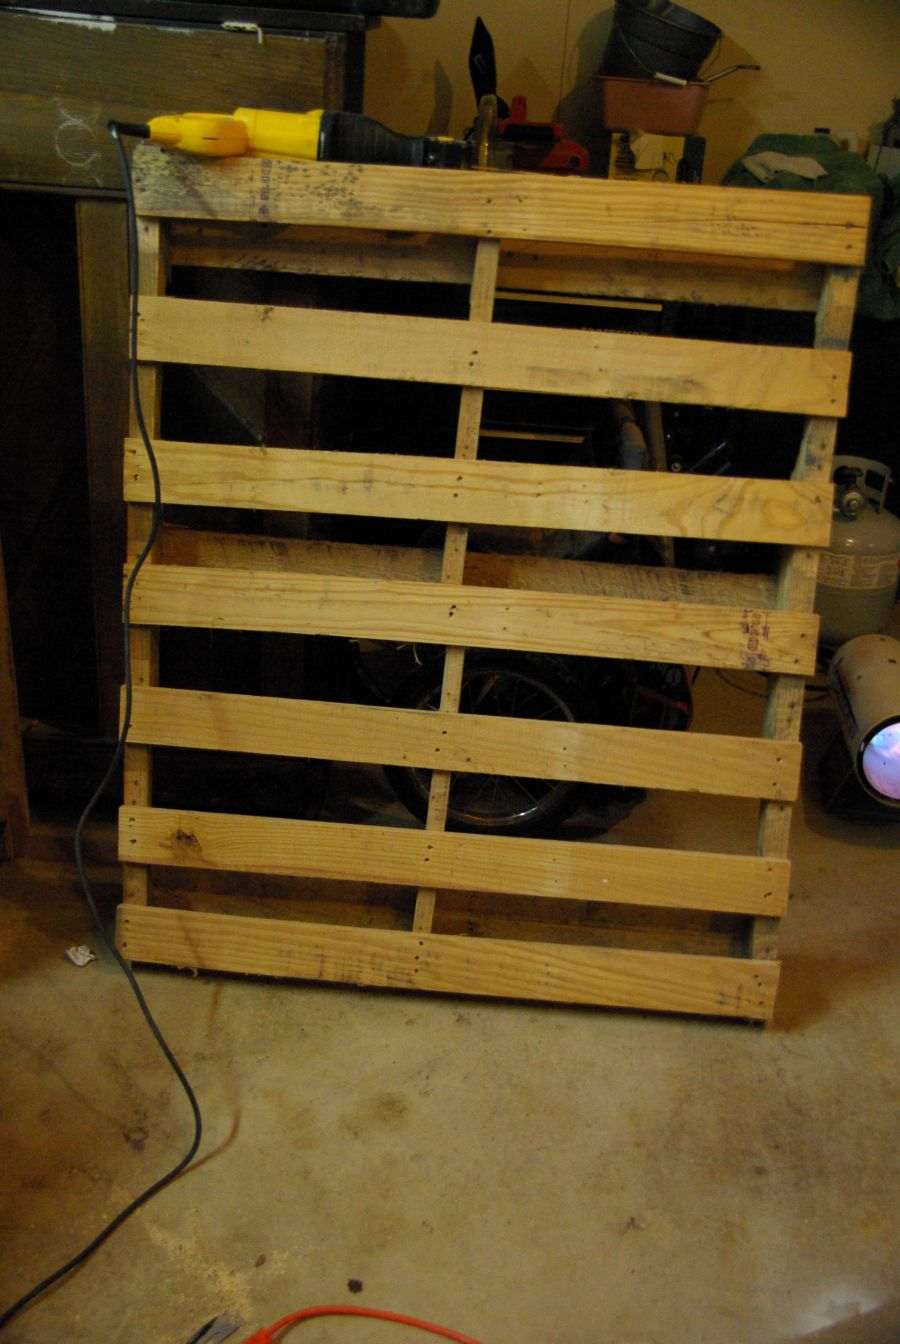 Design Diy Wine Rack diy wall mounted wine racks made of pallets home decorating trends homedit